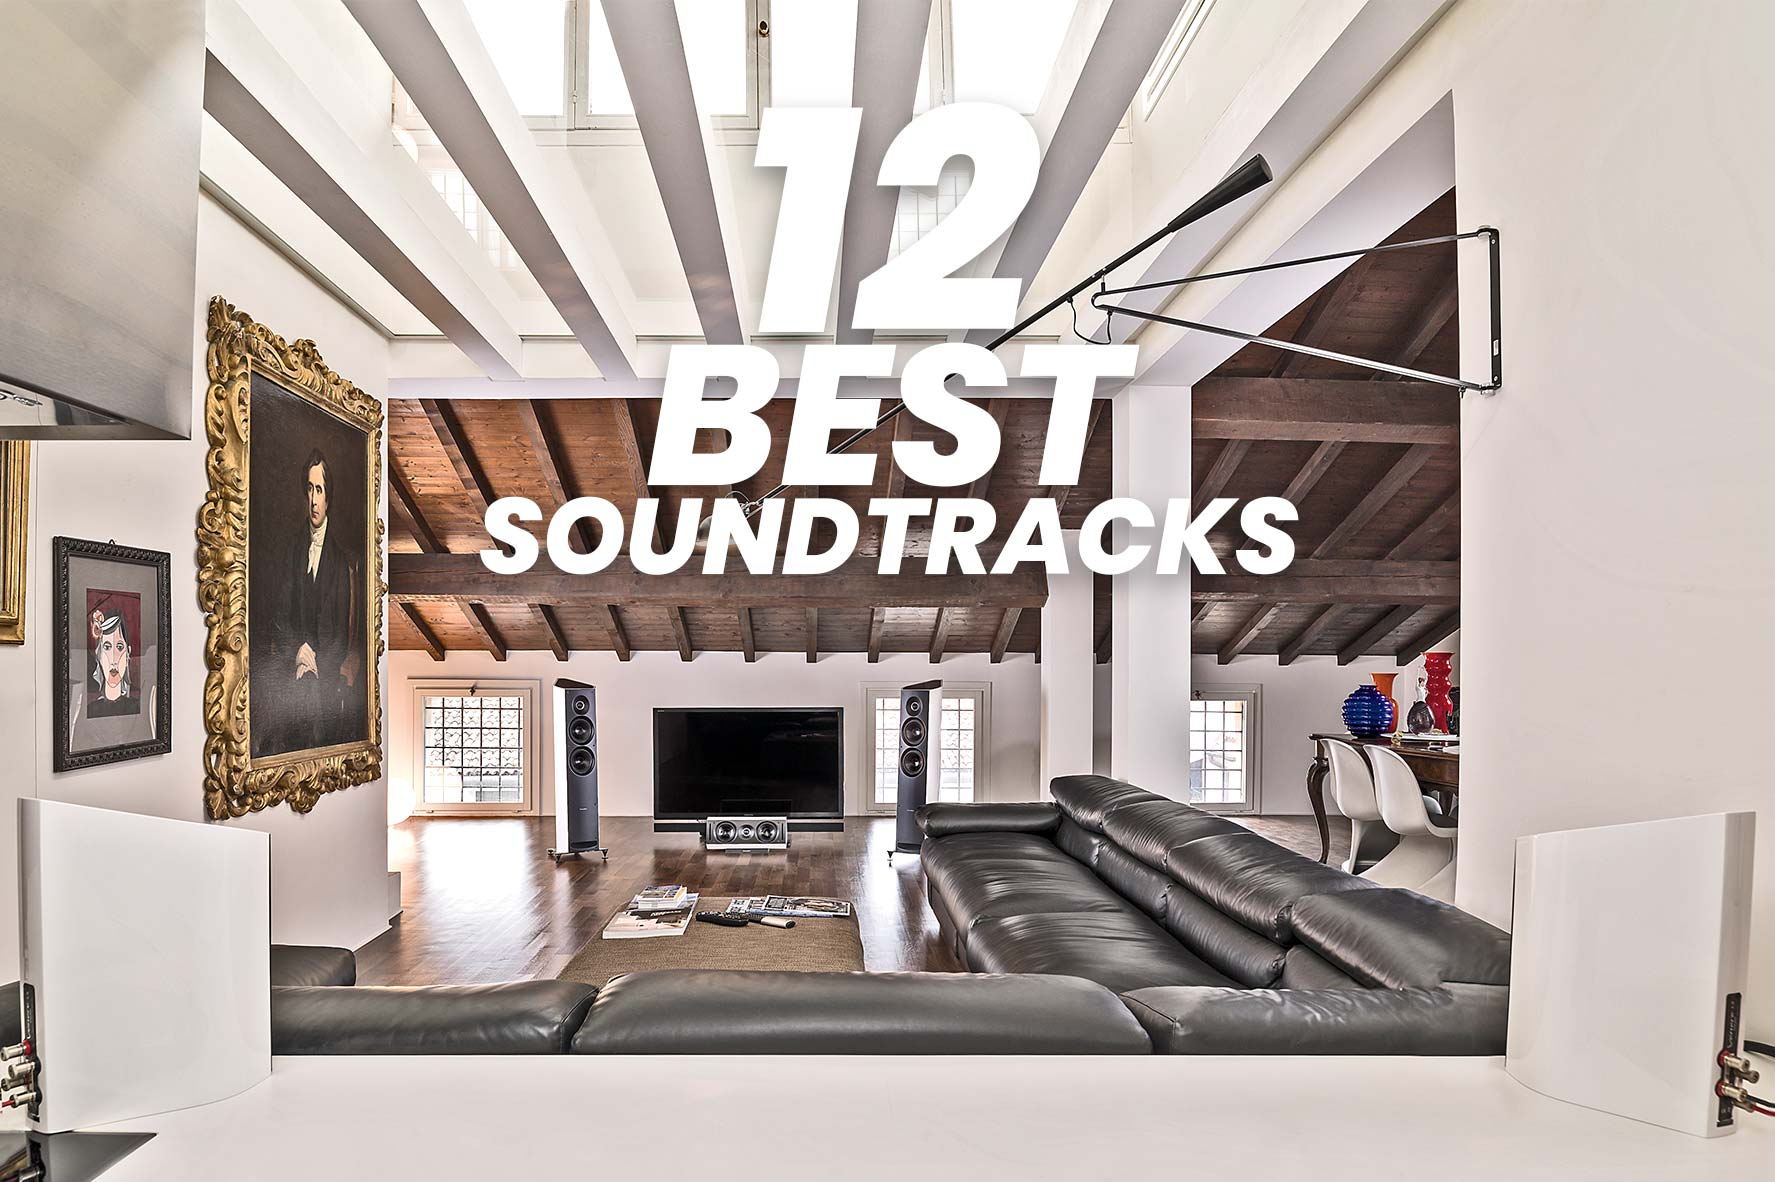 The perfect soundtrack for your Hi-Fi Audio System